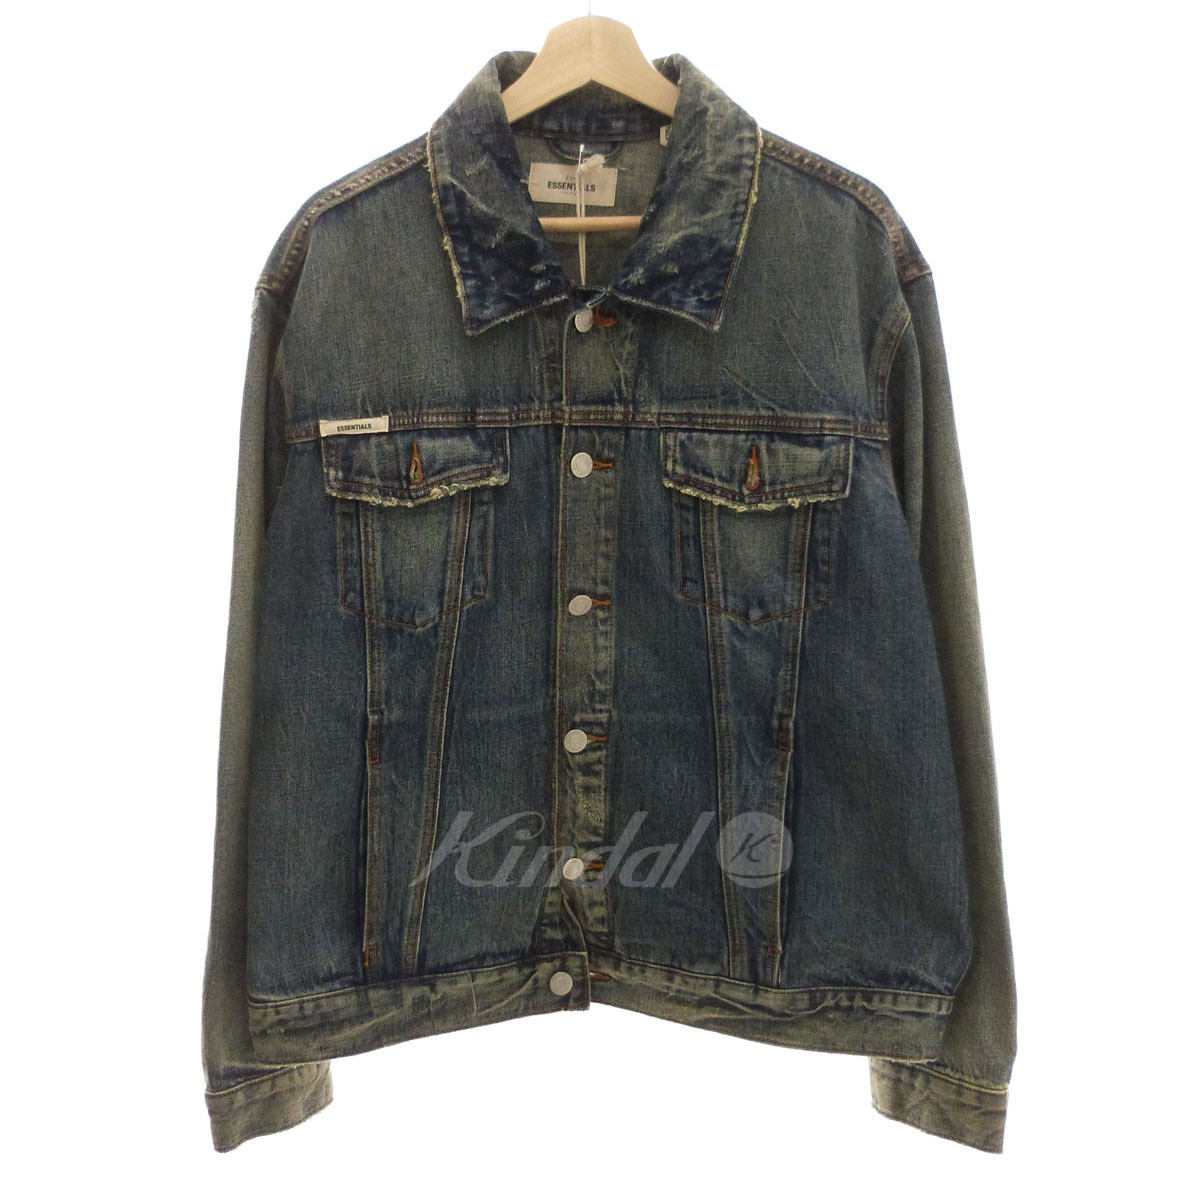 【中古】FOG by FEAR OF GOD ESSENTIALS 「ESSENTIALS Denim Trucker Jacket」デニムジャケット 【送料無料】 【146289】 【KIND1550】